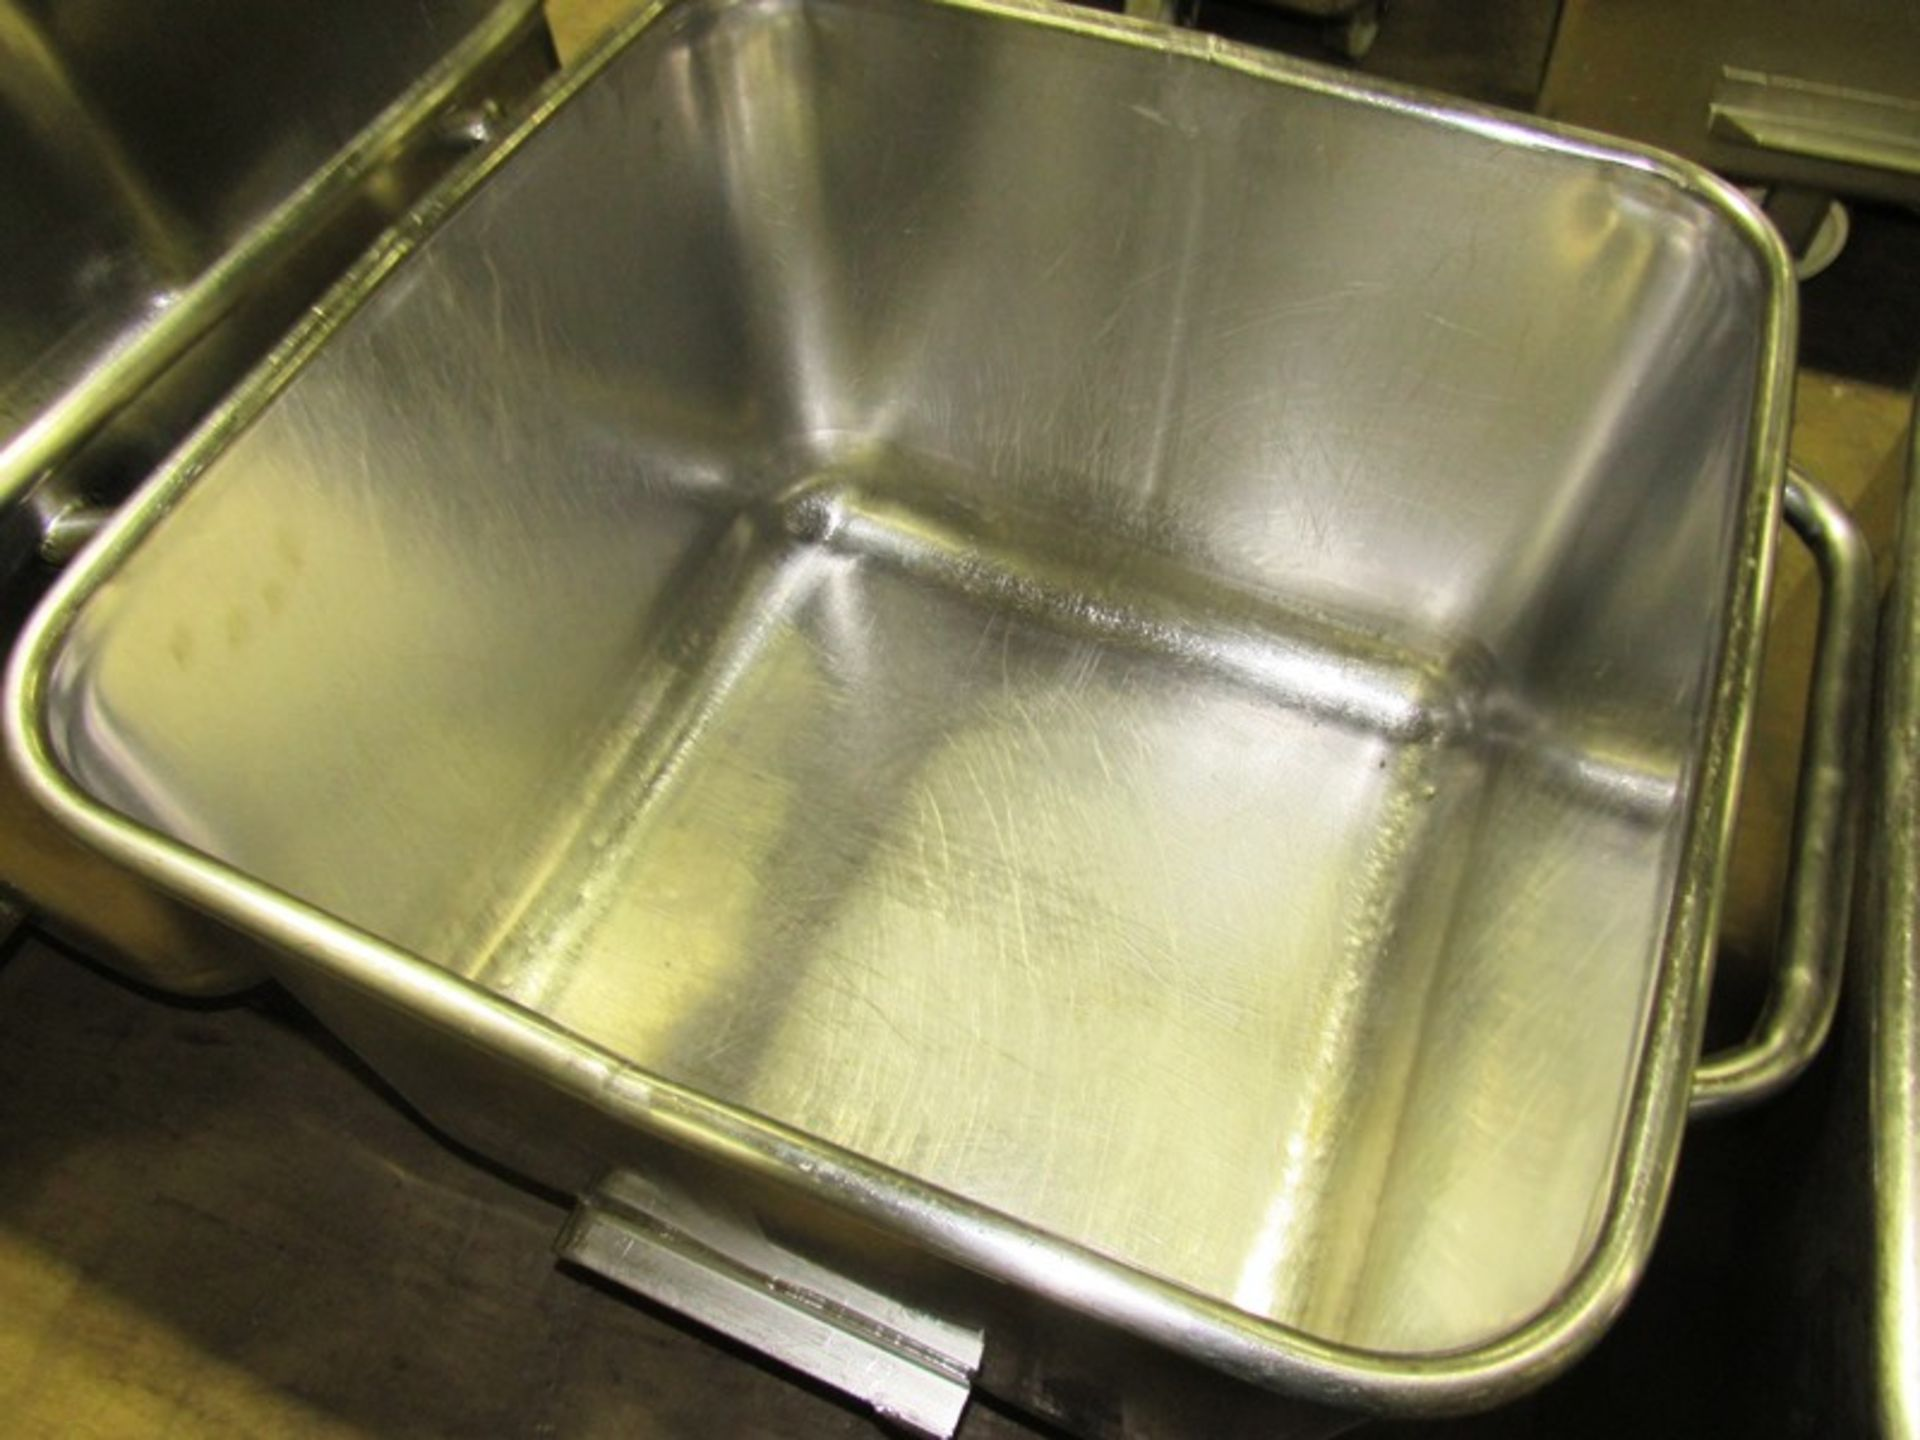 Lot 5 - Stainless Steel Dump Buggies, 400 LB capacity, rolled lip, handle